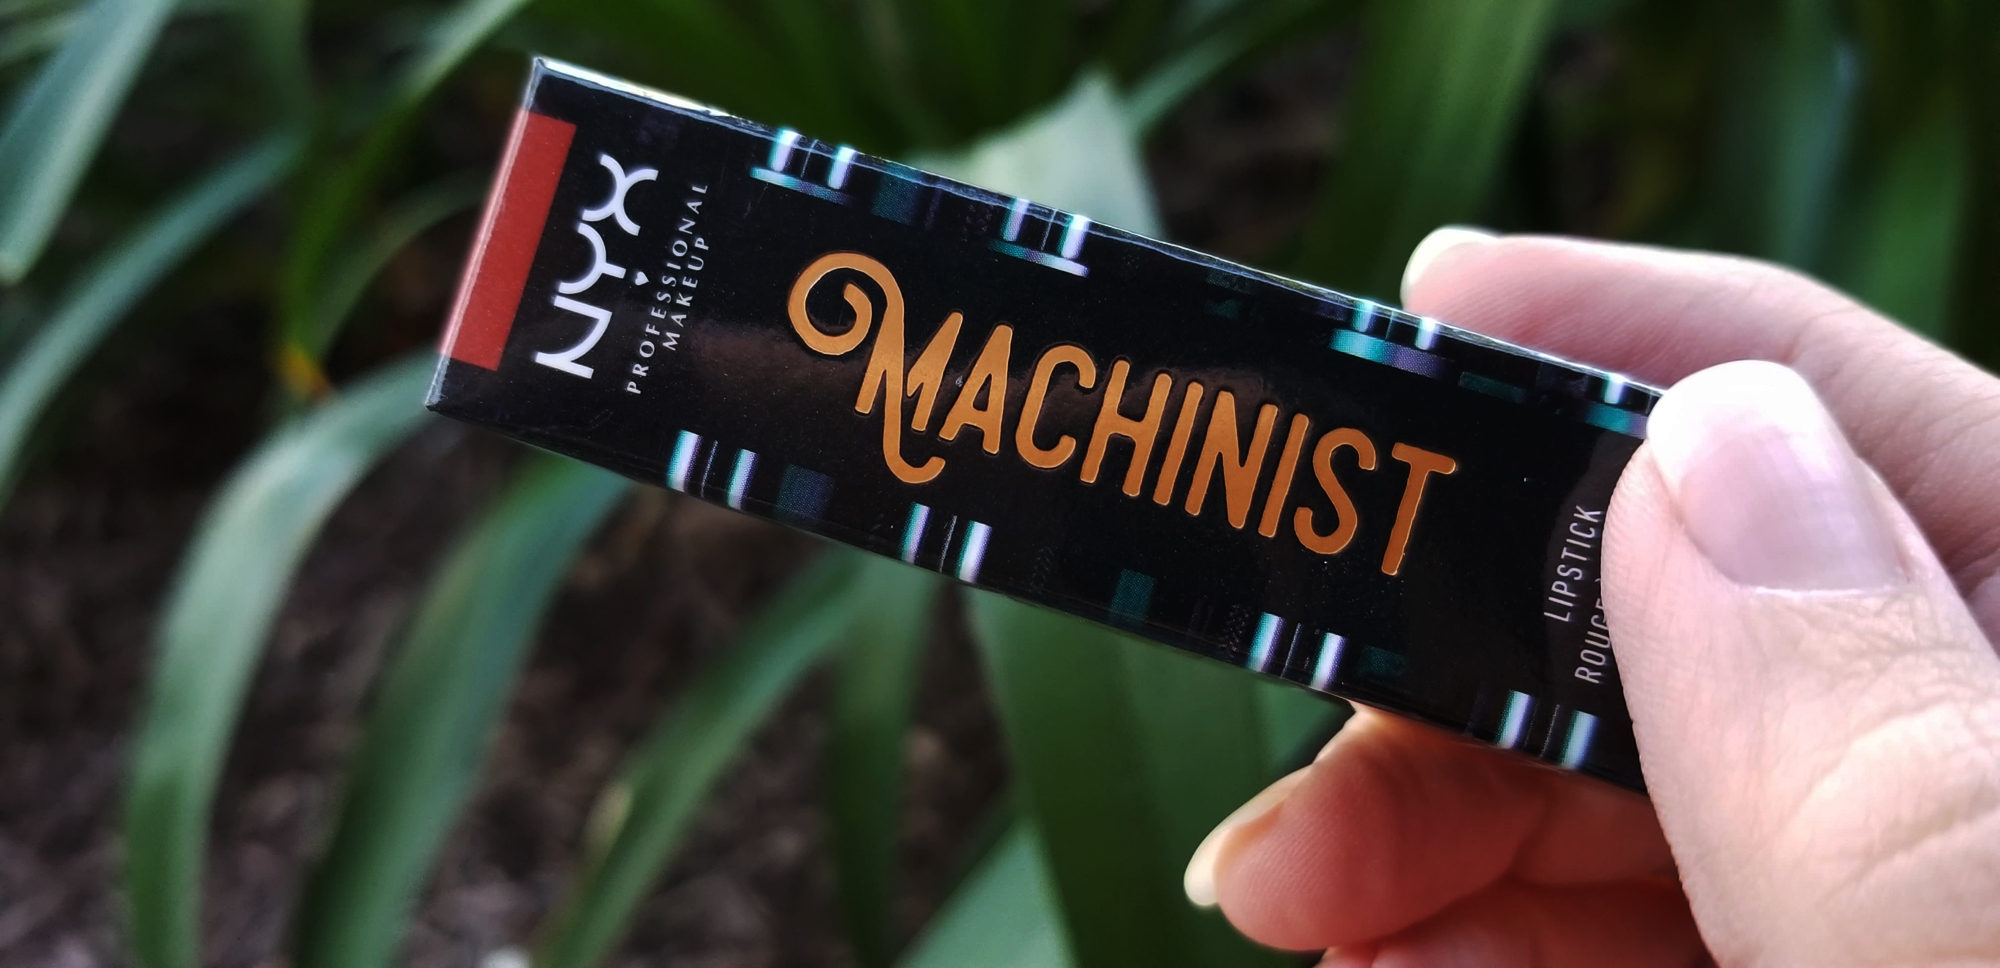 NYX Cosmetics: Mechinist Lipstick Review | Style Through Her Eyes